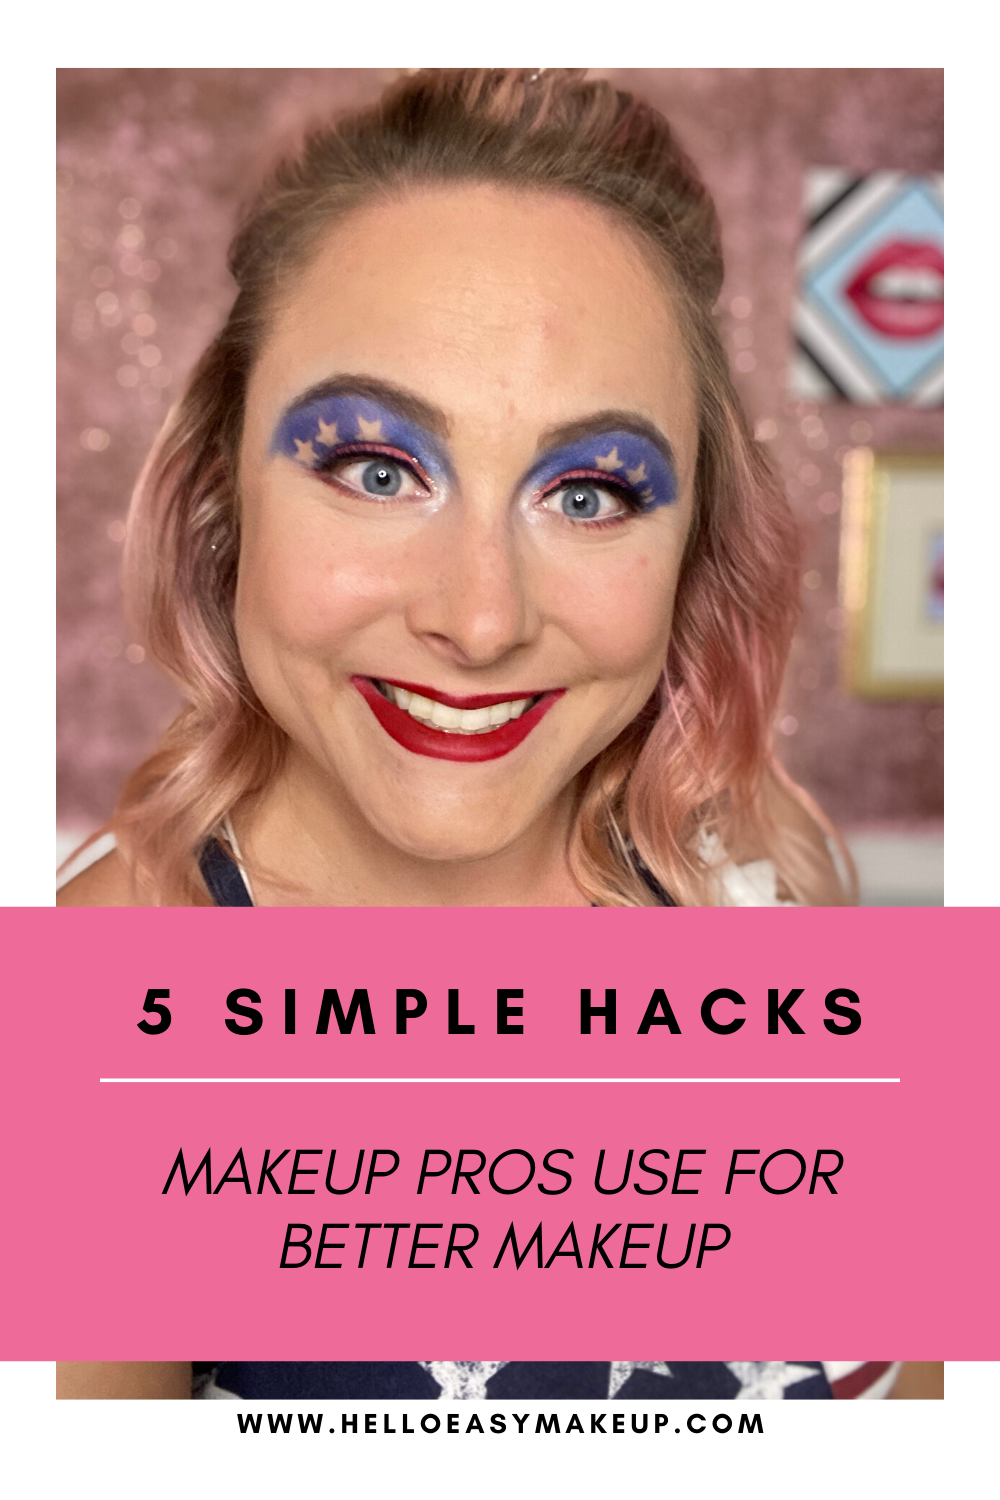 5 Simple Hacks Makeup Pros Use in 2020 Makeup for